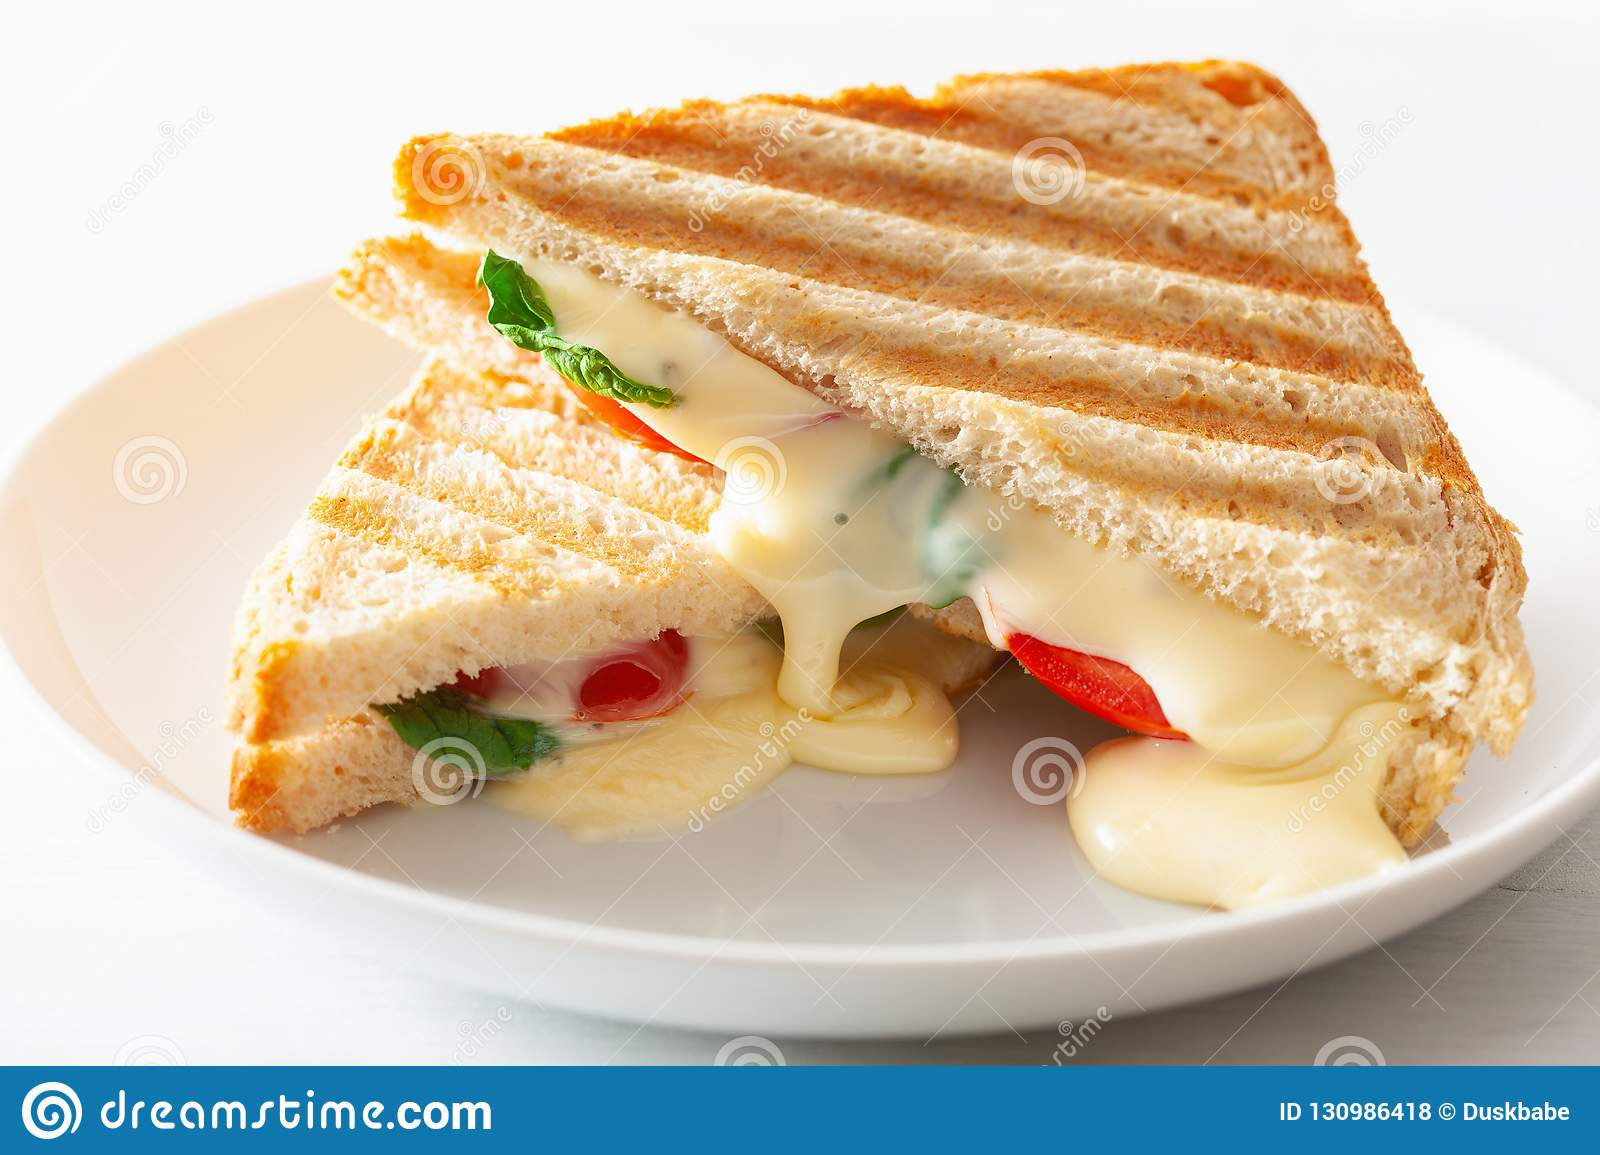 Grilled Cheese And Tomato Sandwich On White Background Stock Photo Image Of Crispy Appetizer 130986418